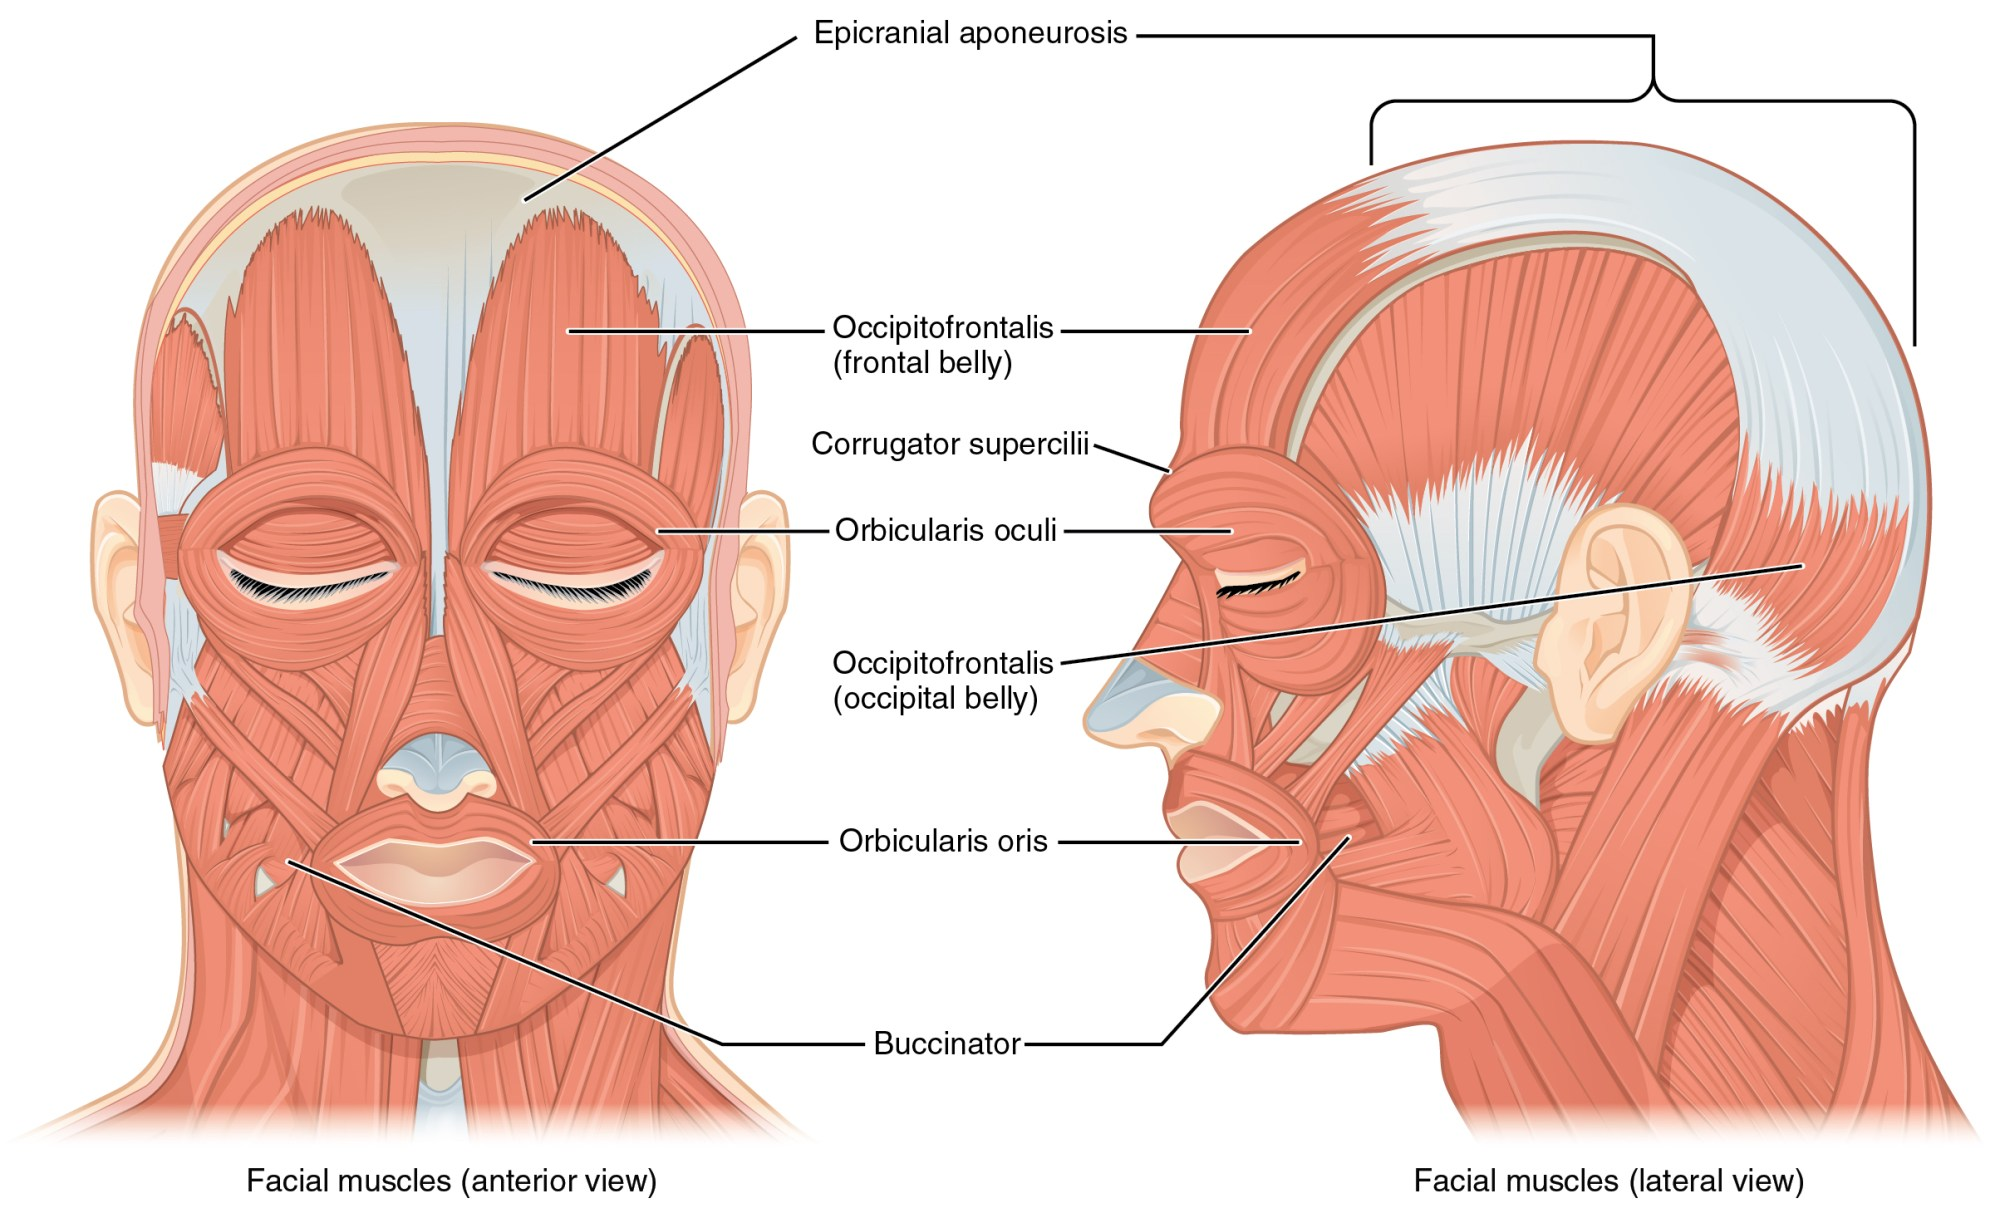 hight resolution of located at https cnx org resources 9b369a7466ec2ef44a97decc8de15593c7189e13 1106 front and side views of the muscles of facial expressions jpg